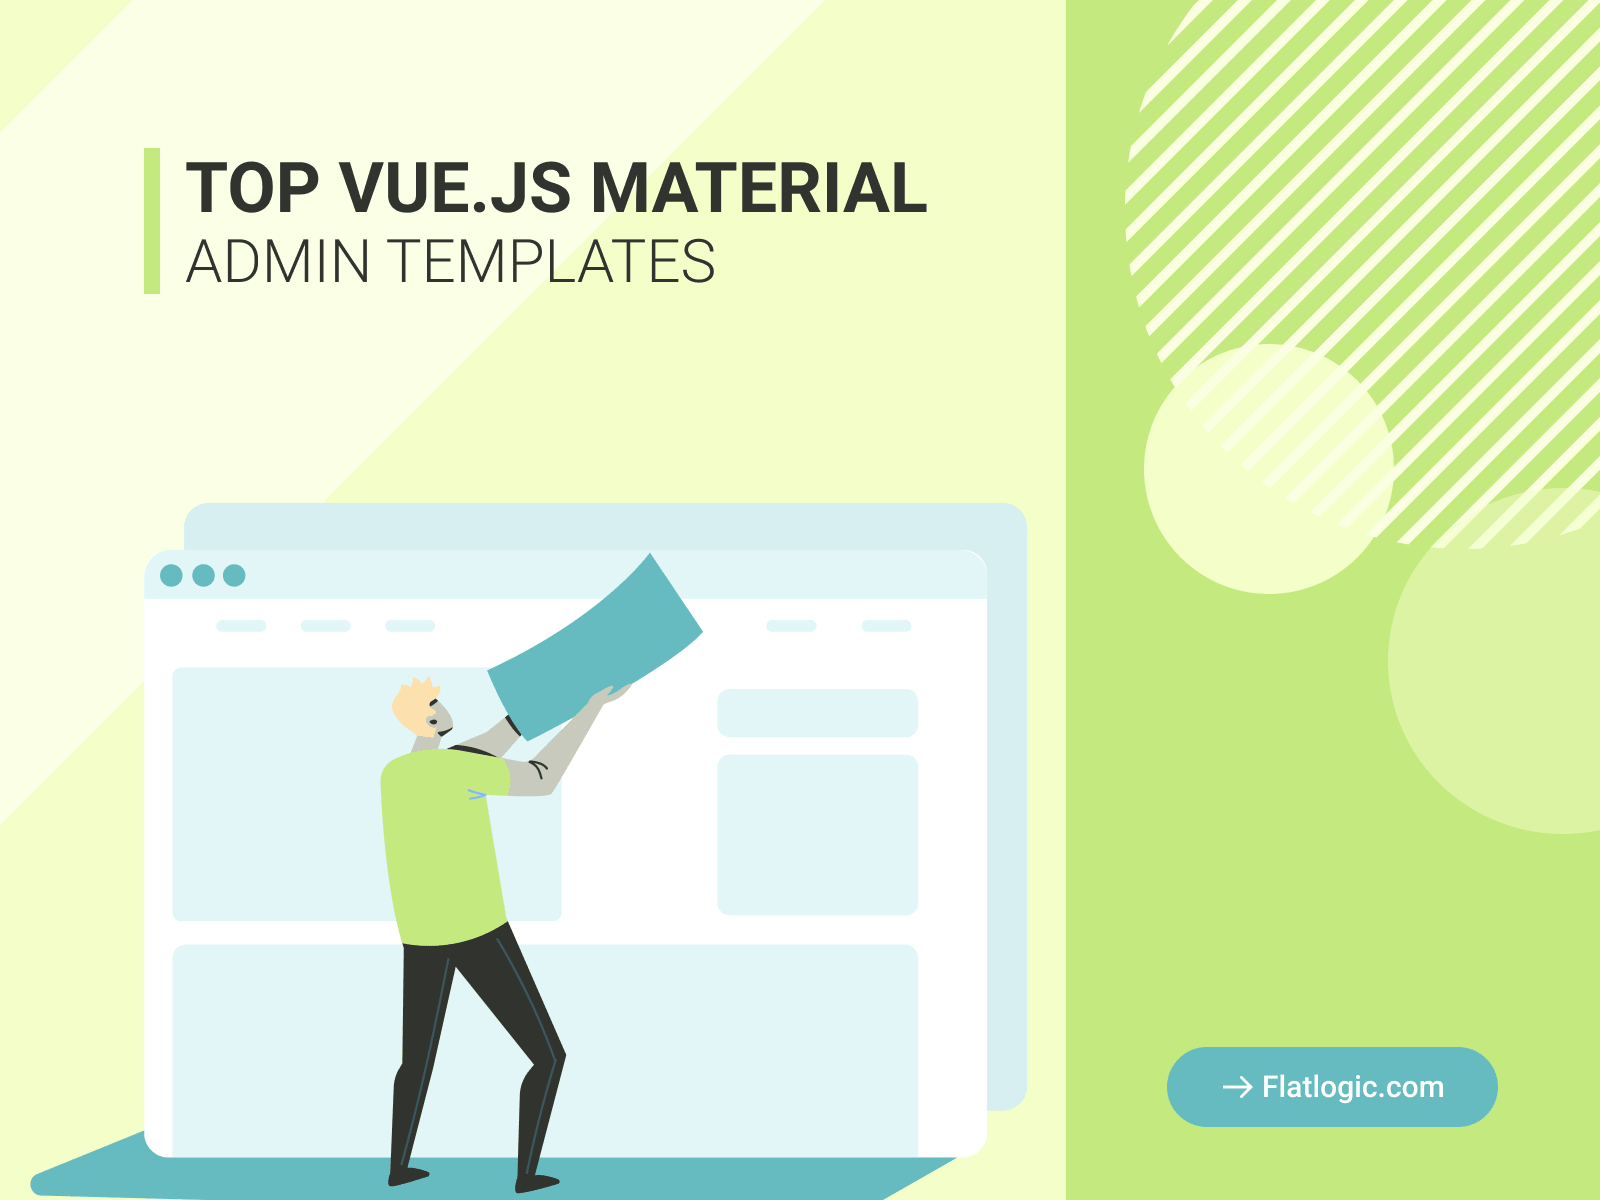 Top 7 Awesome Vue Material Admin Dashboard Templates Worth Your Attention